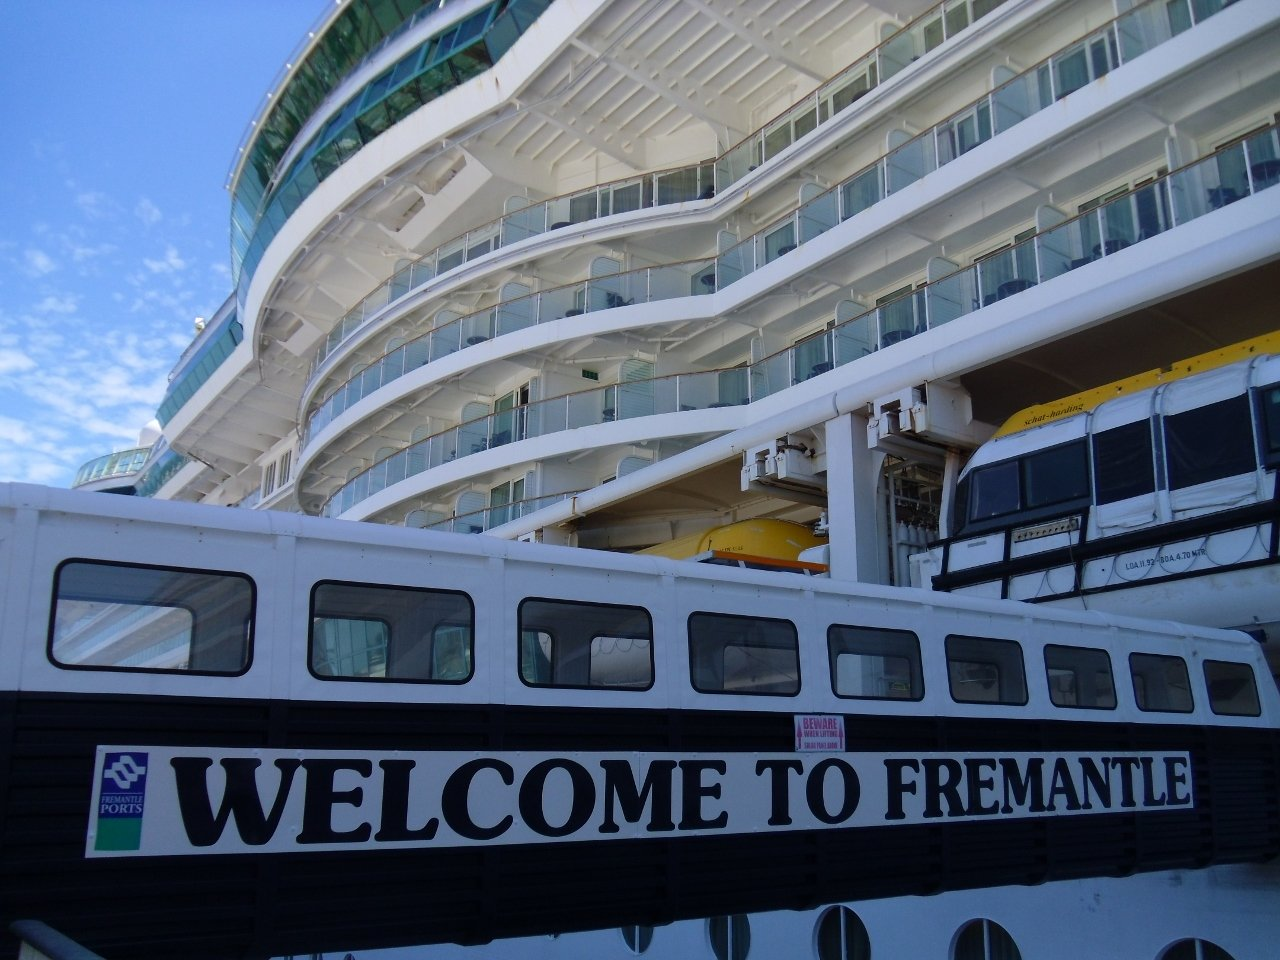 Royal Caribbean's Radiance of the Seas pays occasional visits to Fremantle.